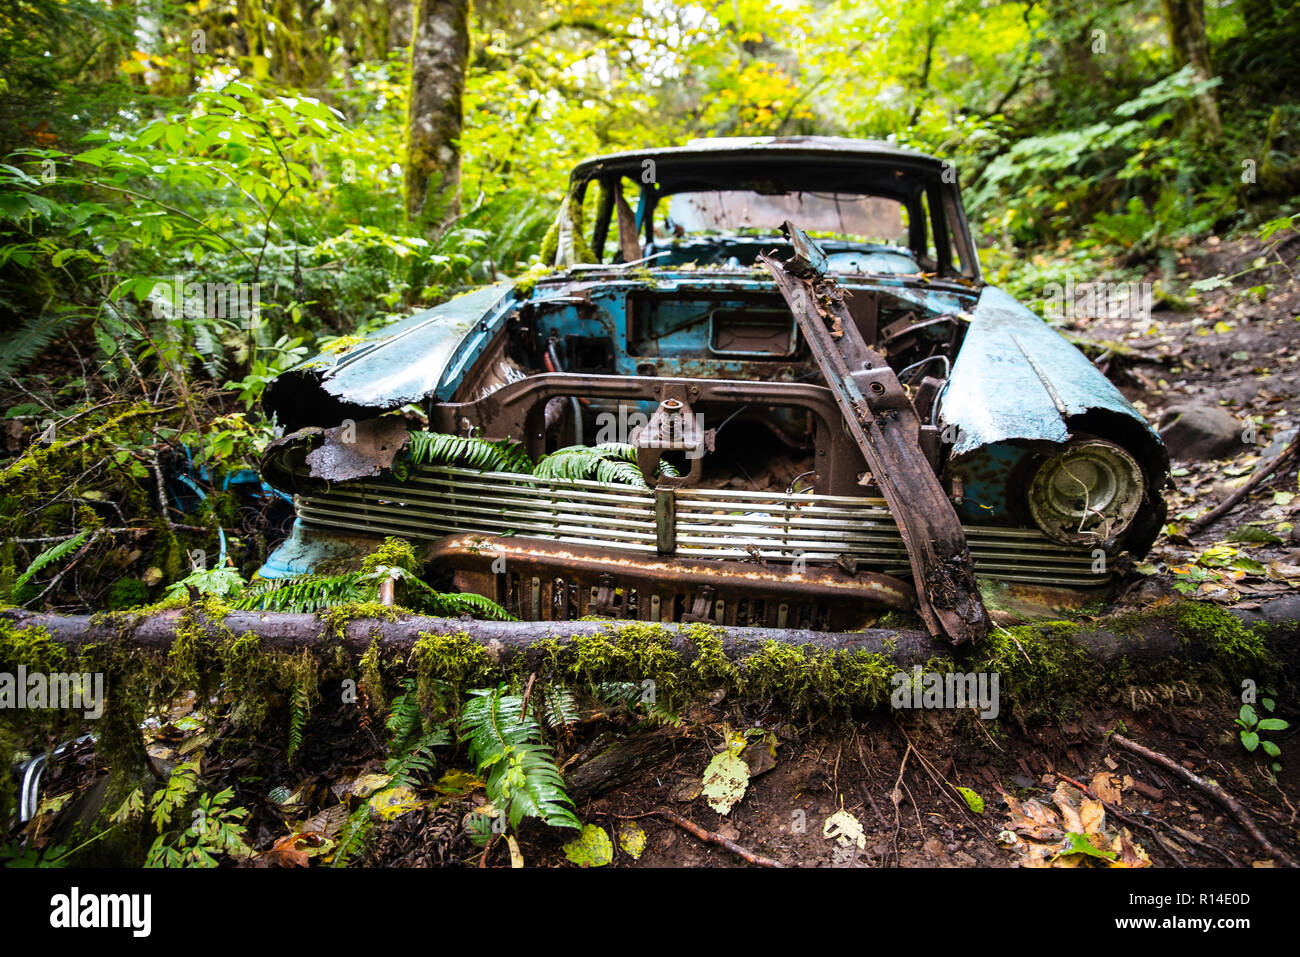 Old abandoned rusted old wreck car in the forest - Stock Image